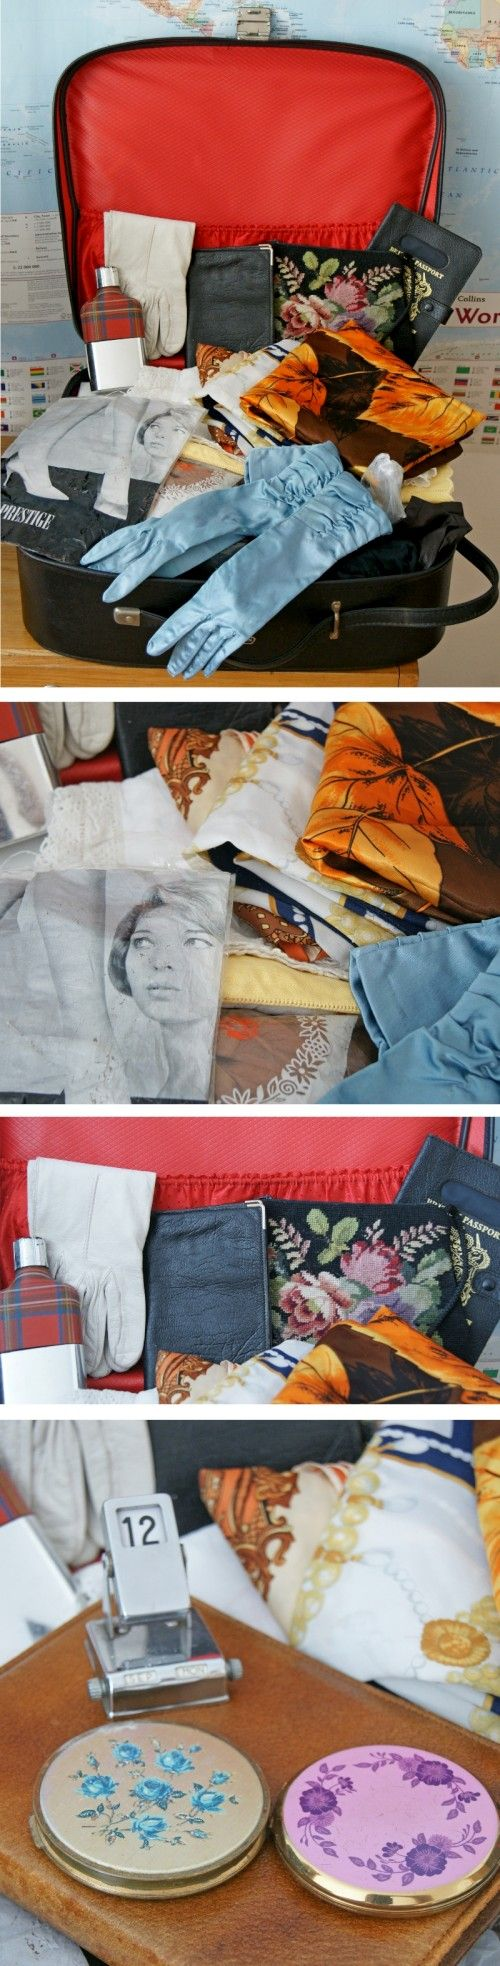 Vintage Rummage Case | Accessories Mixed Lot. Nothing beats having a good rummage for a vintage gem!